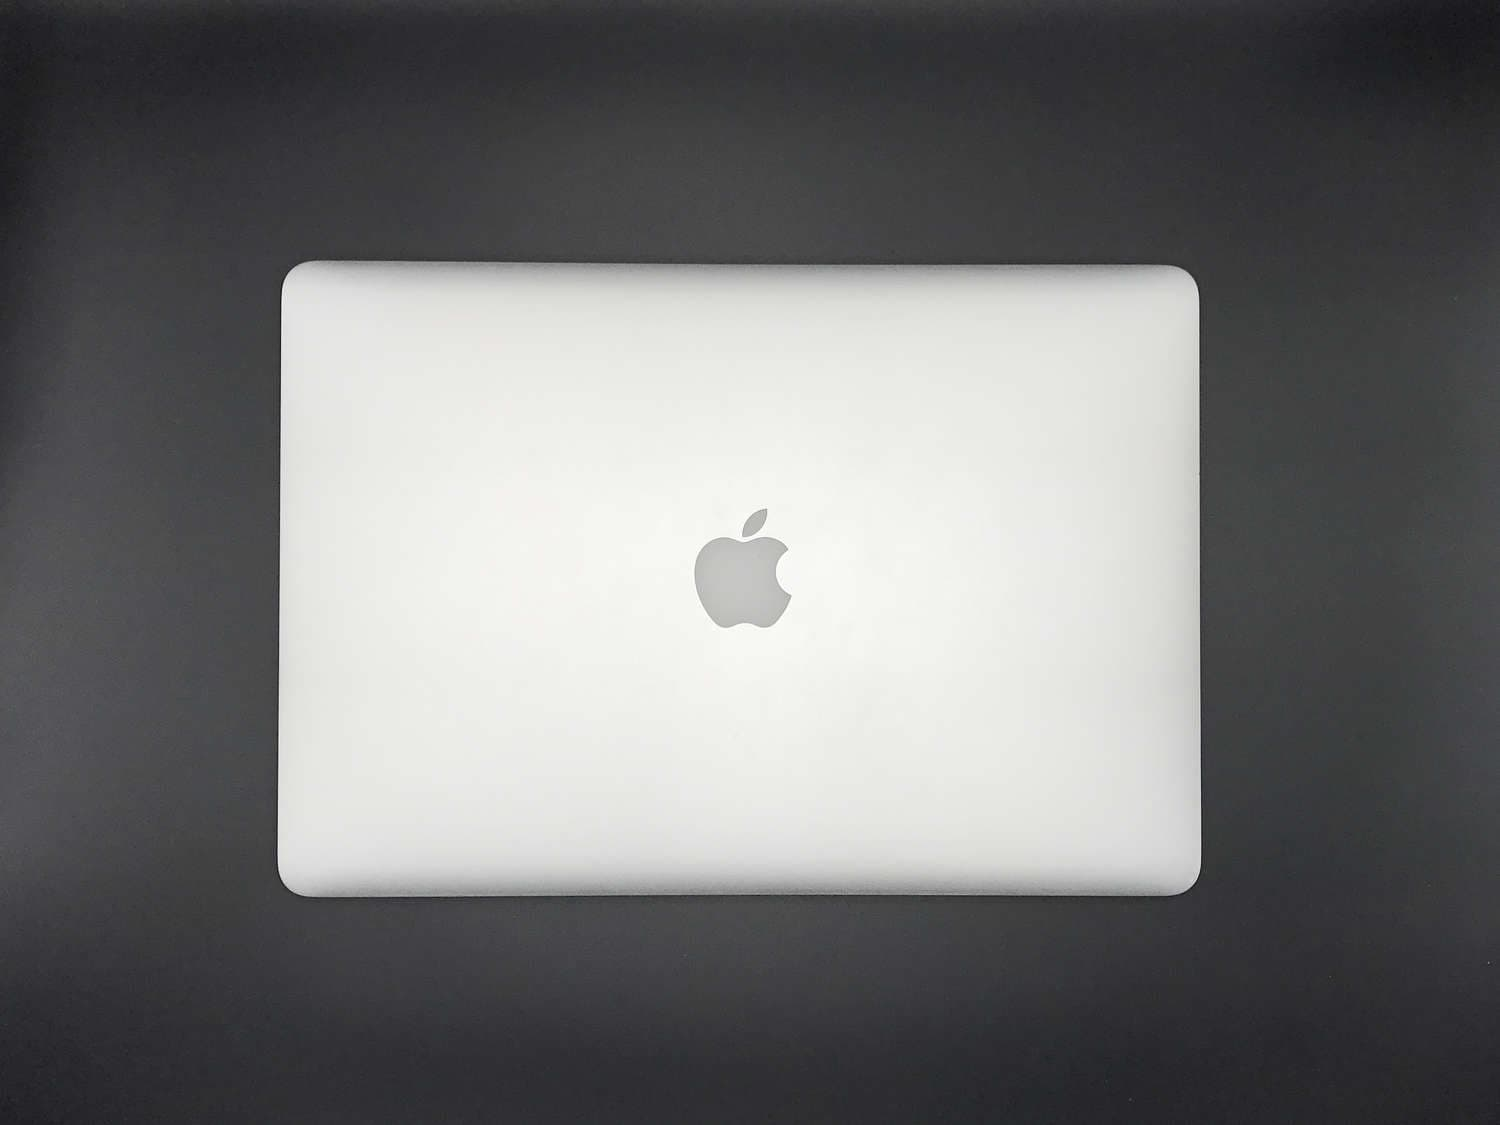 Apple MacBook Retina 15-inch